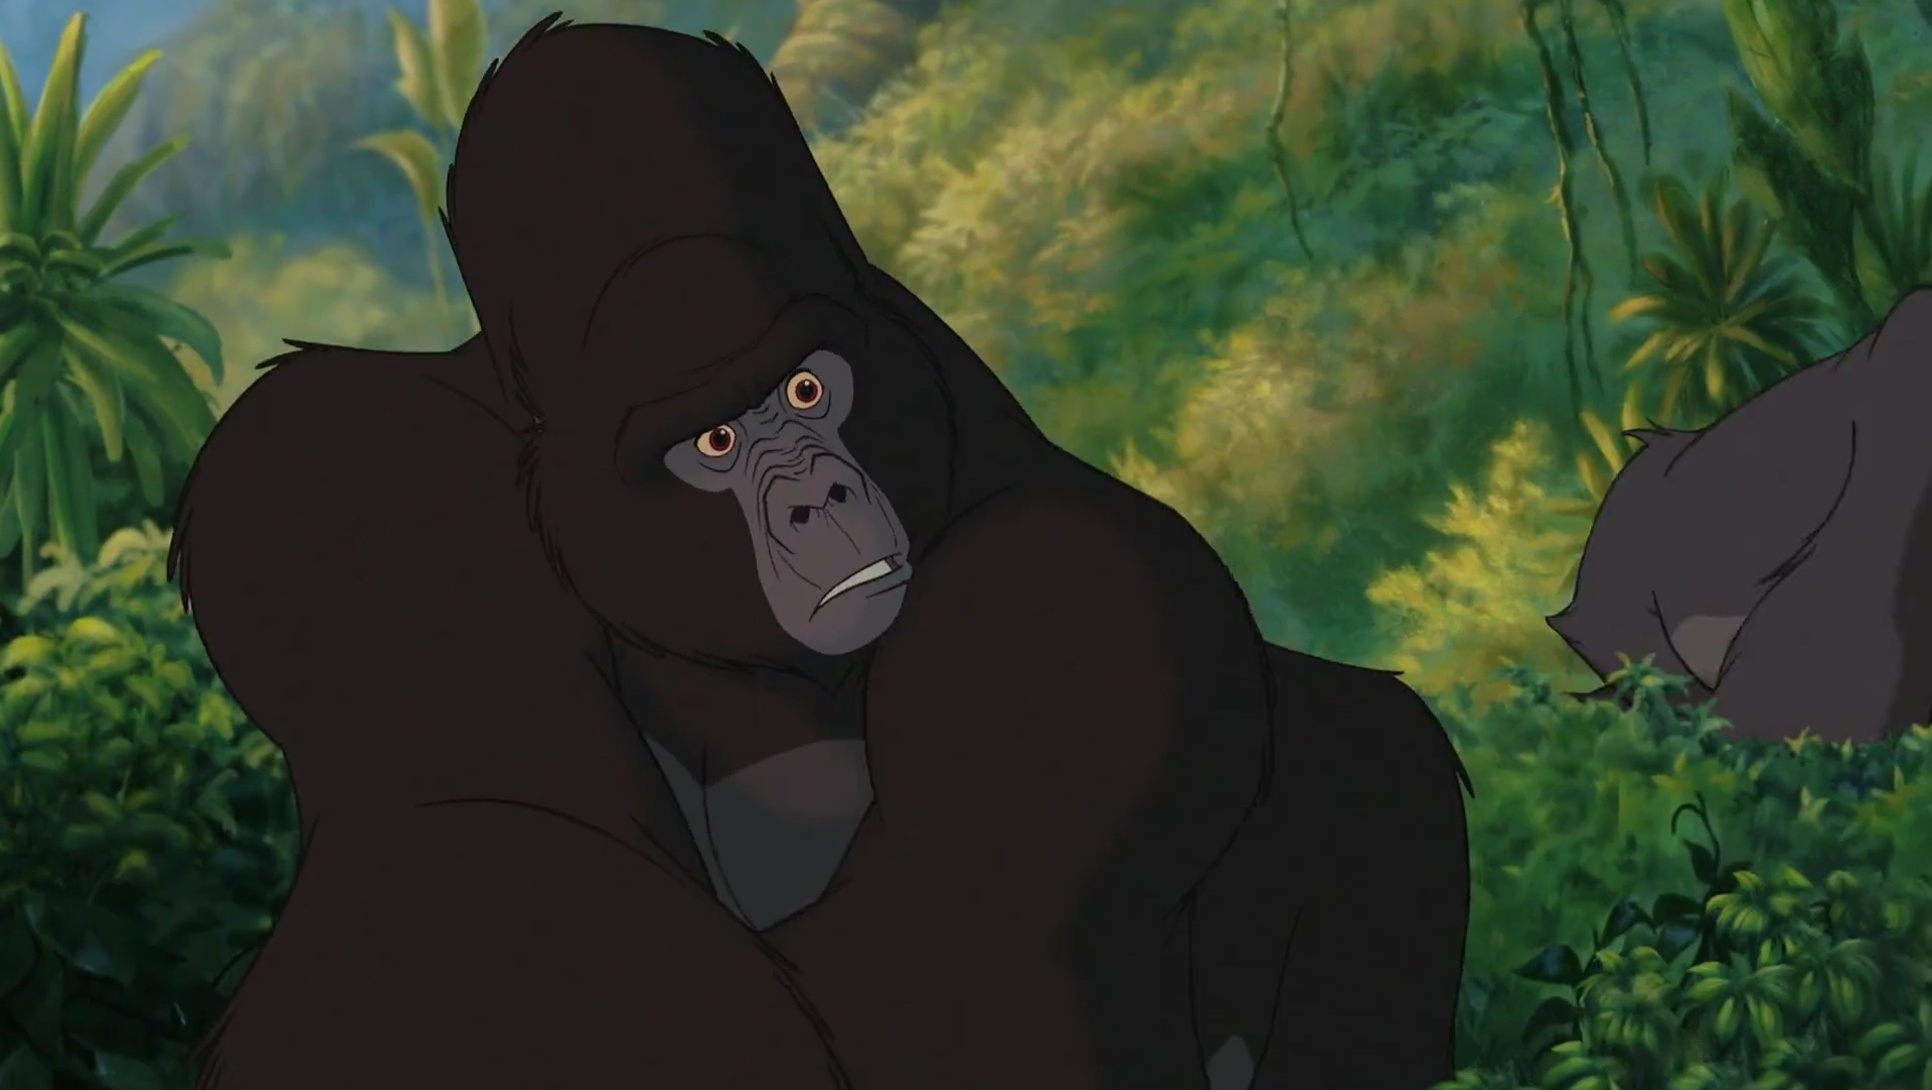 Kerchak was the leader of the gorillas and a major character in Disneys 1999 animated feature film Tarzan Kerchach is a large and powerfull gorilla who would do anything to protect his family Due to this Kerchak often appeared to be mistrusting cold judgmental aggressive towards